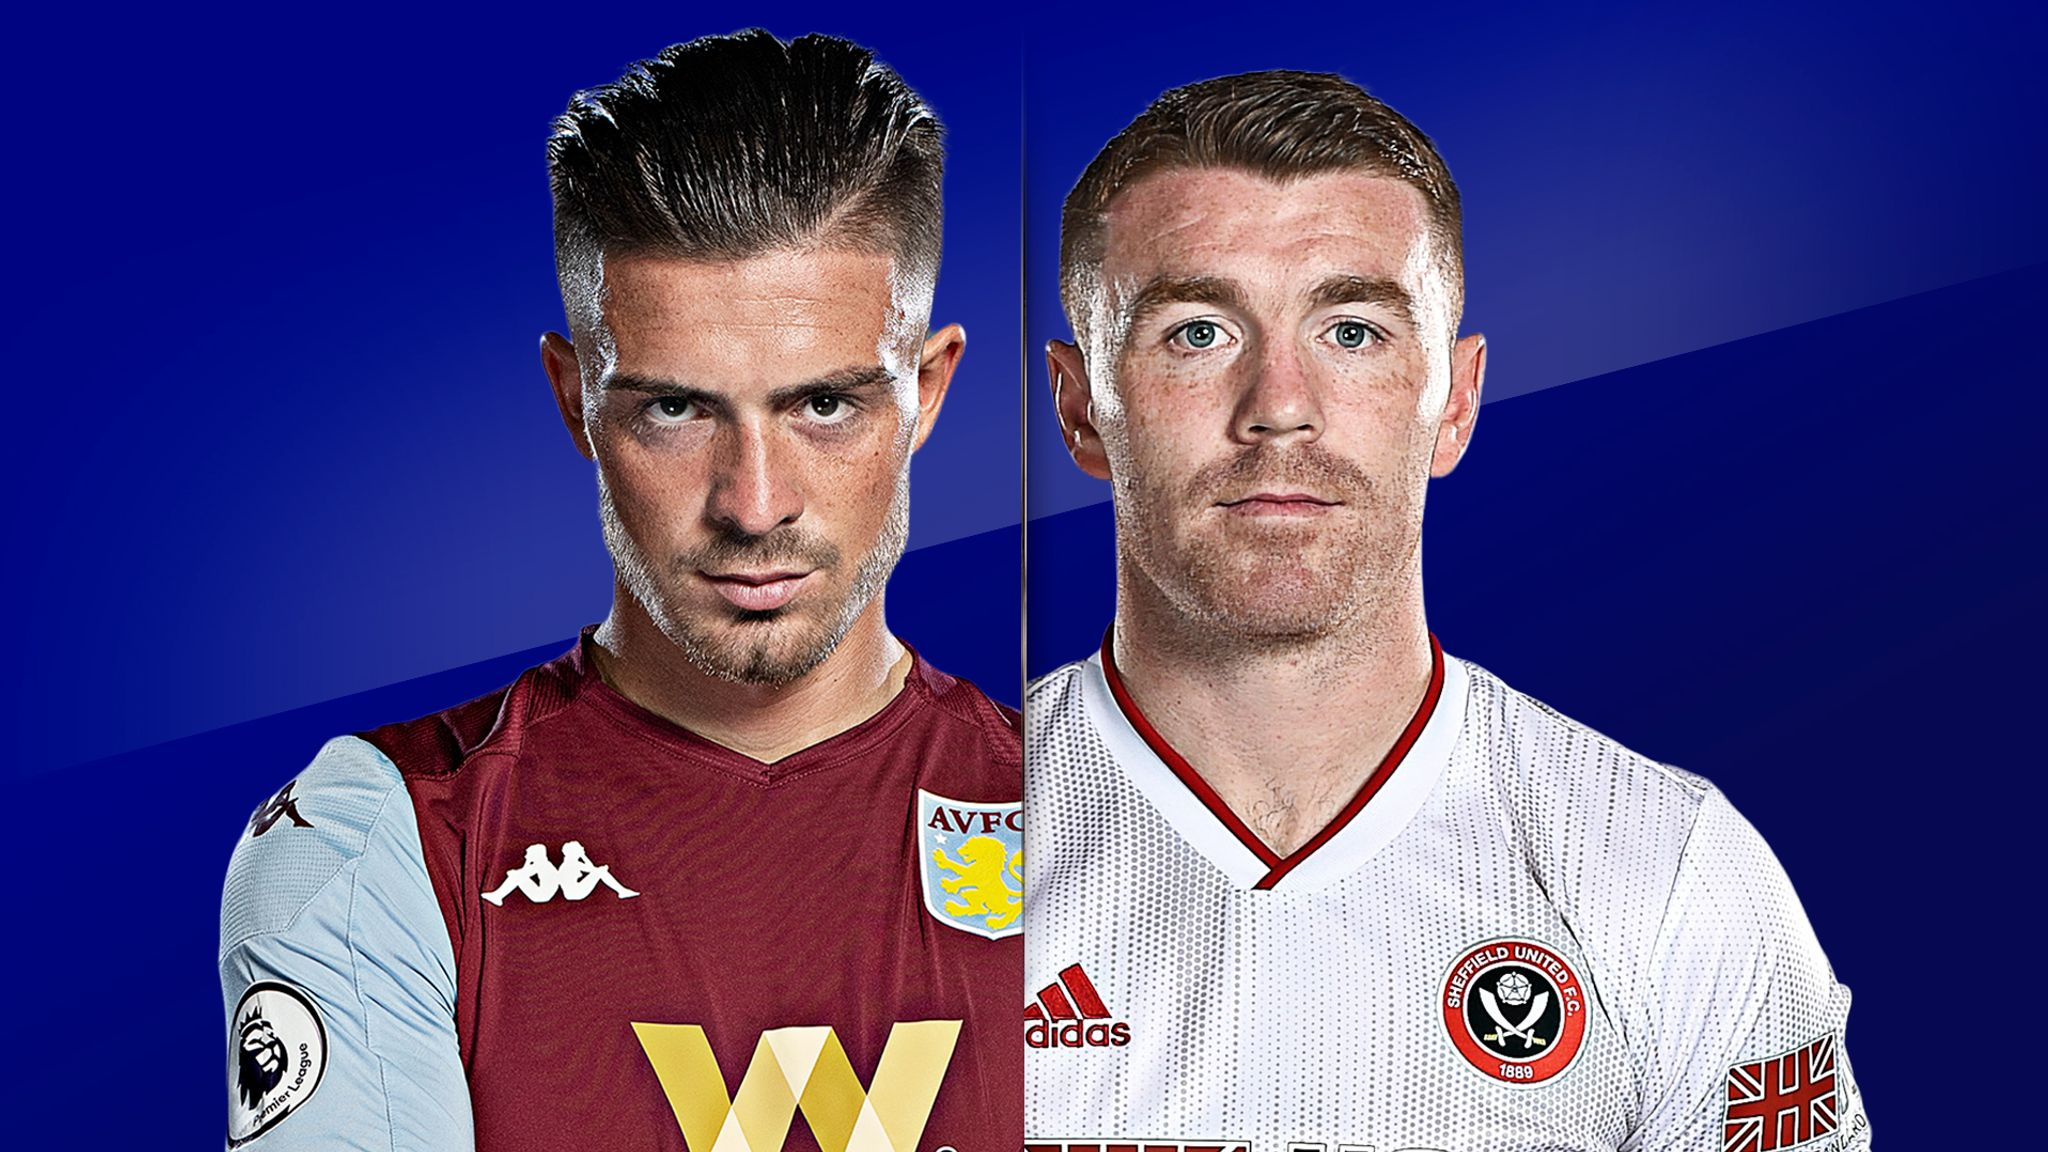 Live match preview - A Villa vs Sheff Utd 17.06.2020